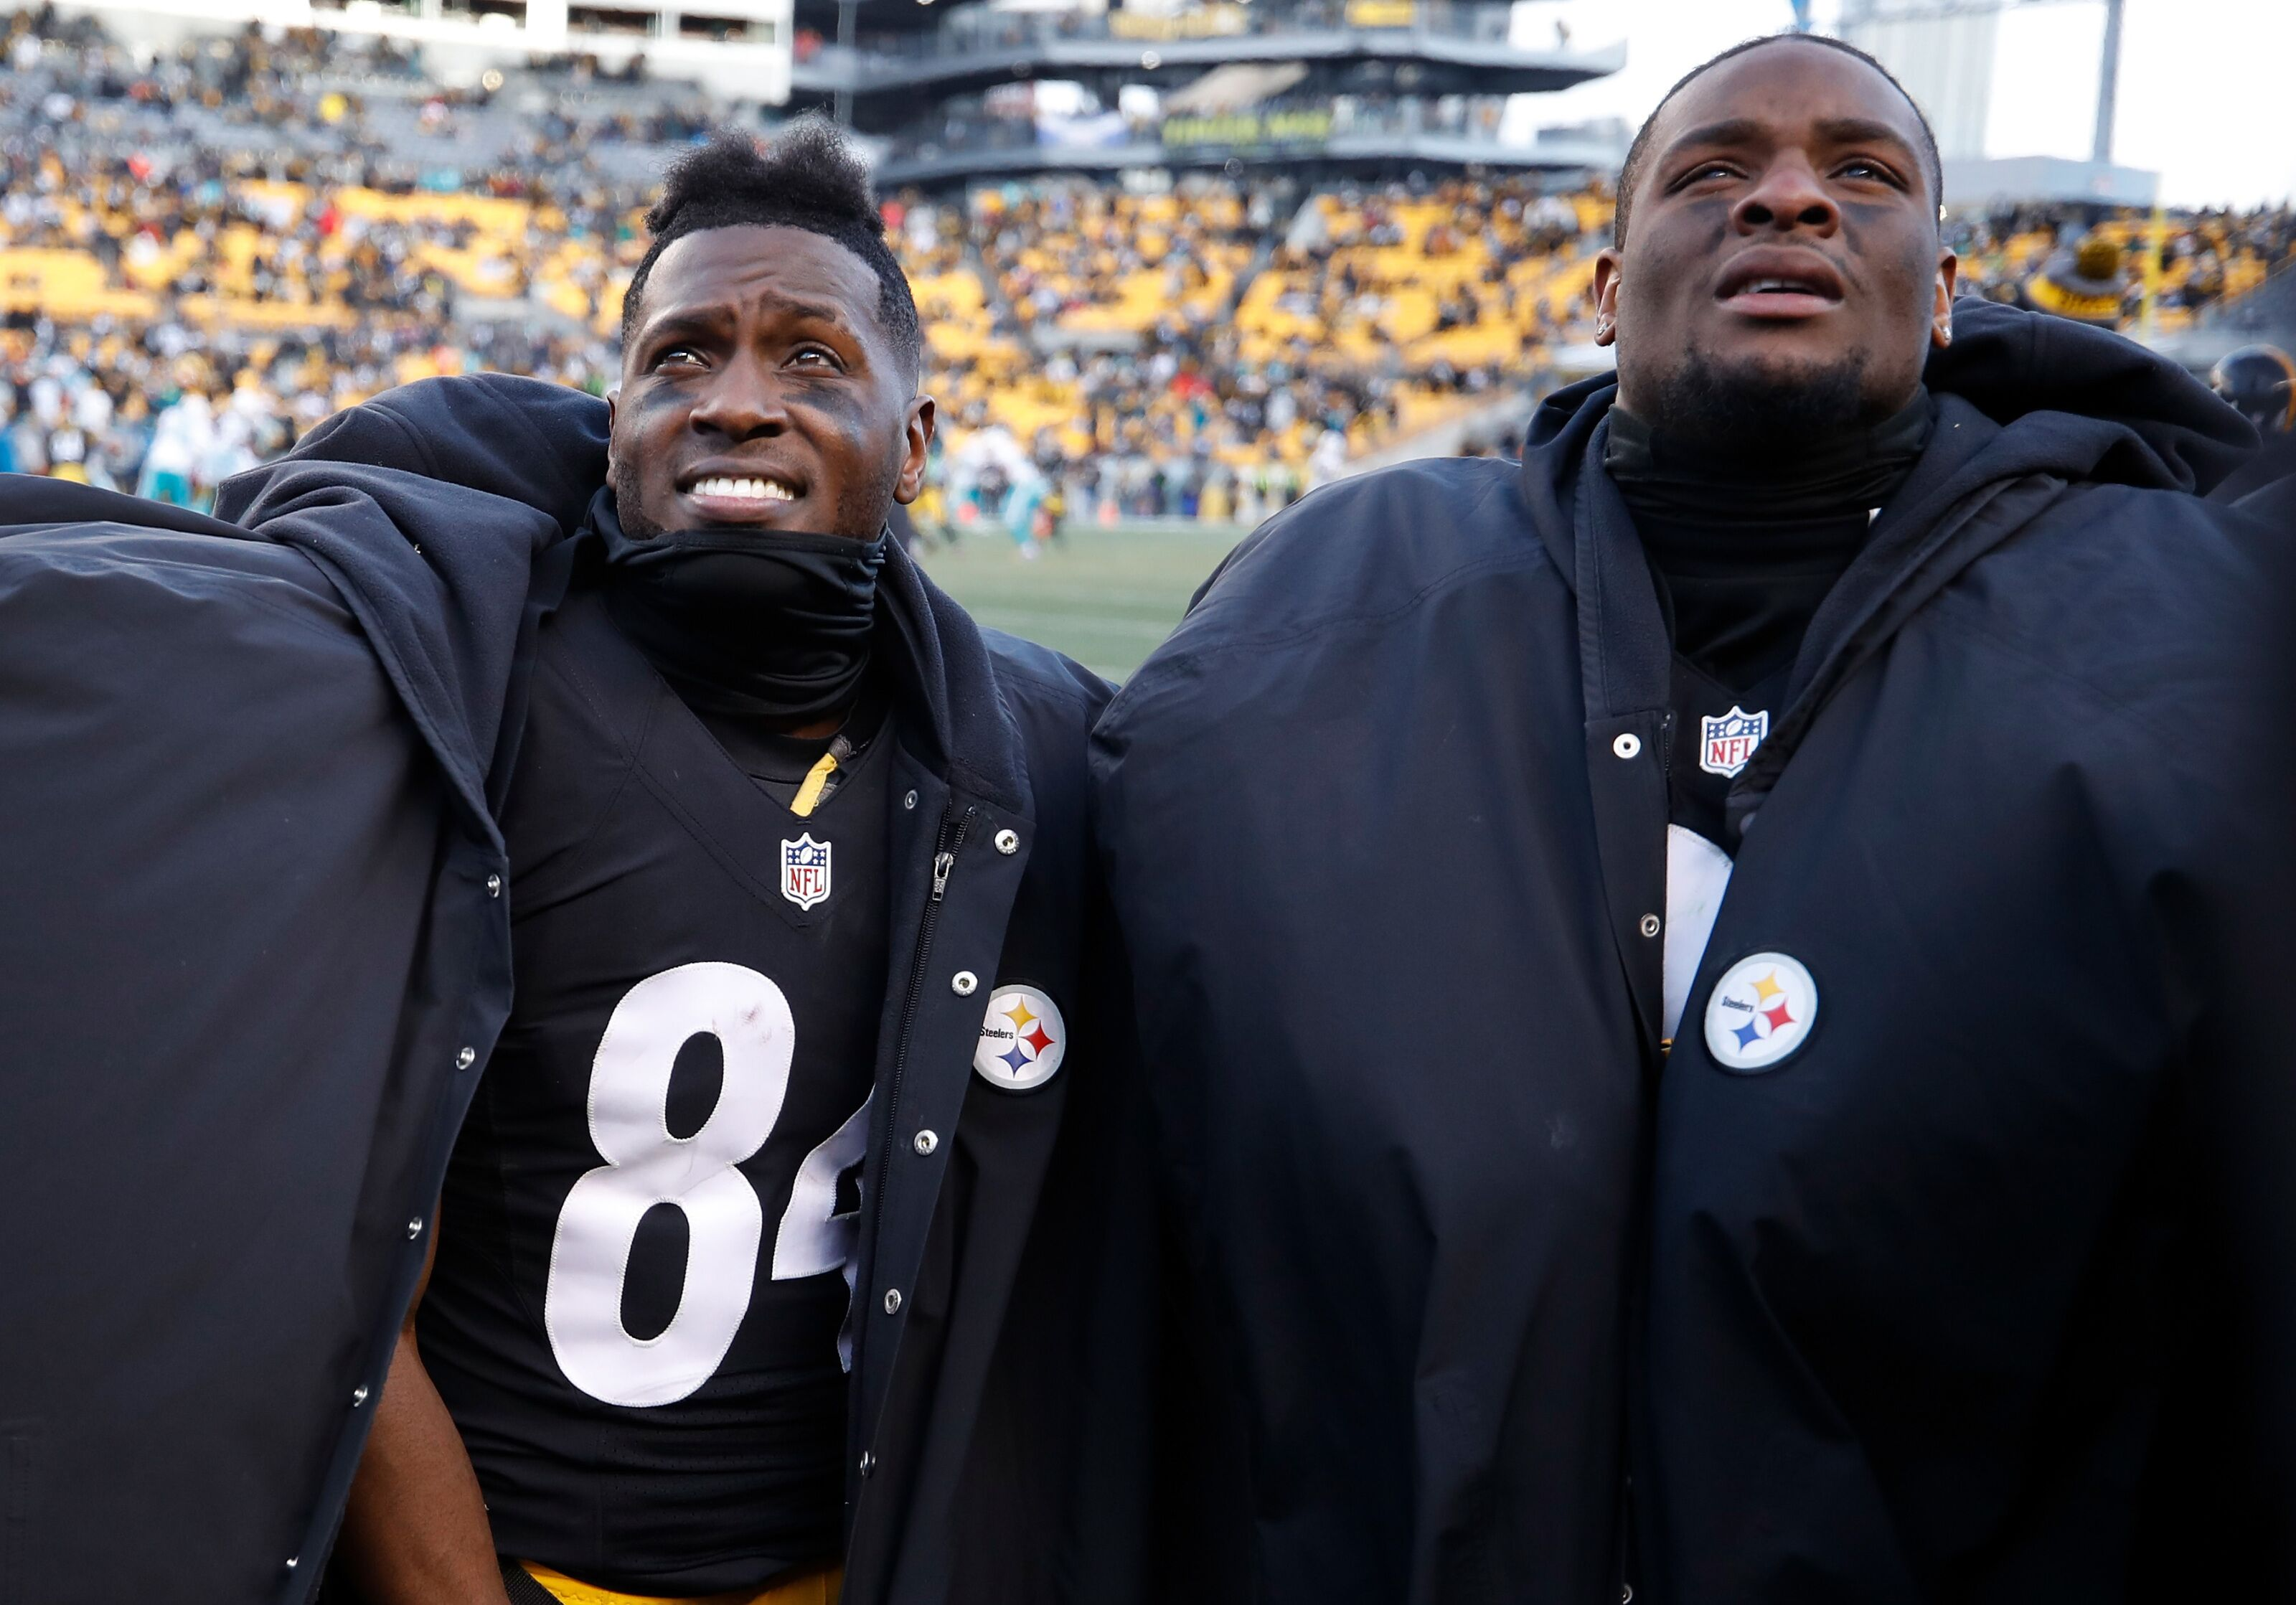 Le'Veon Bell offers advice to former teammate Antonio Brown